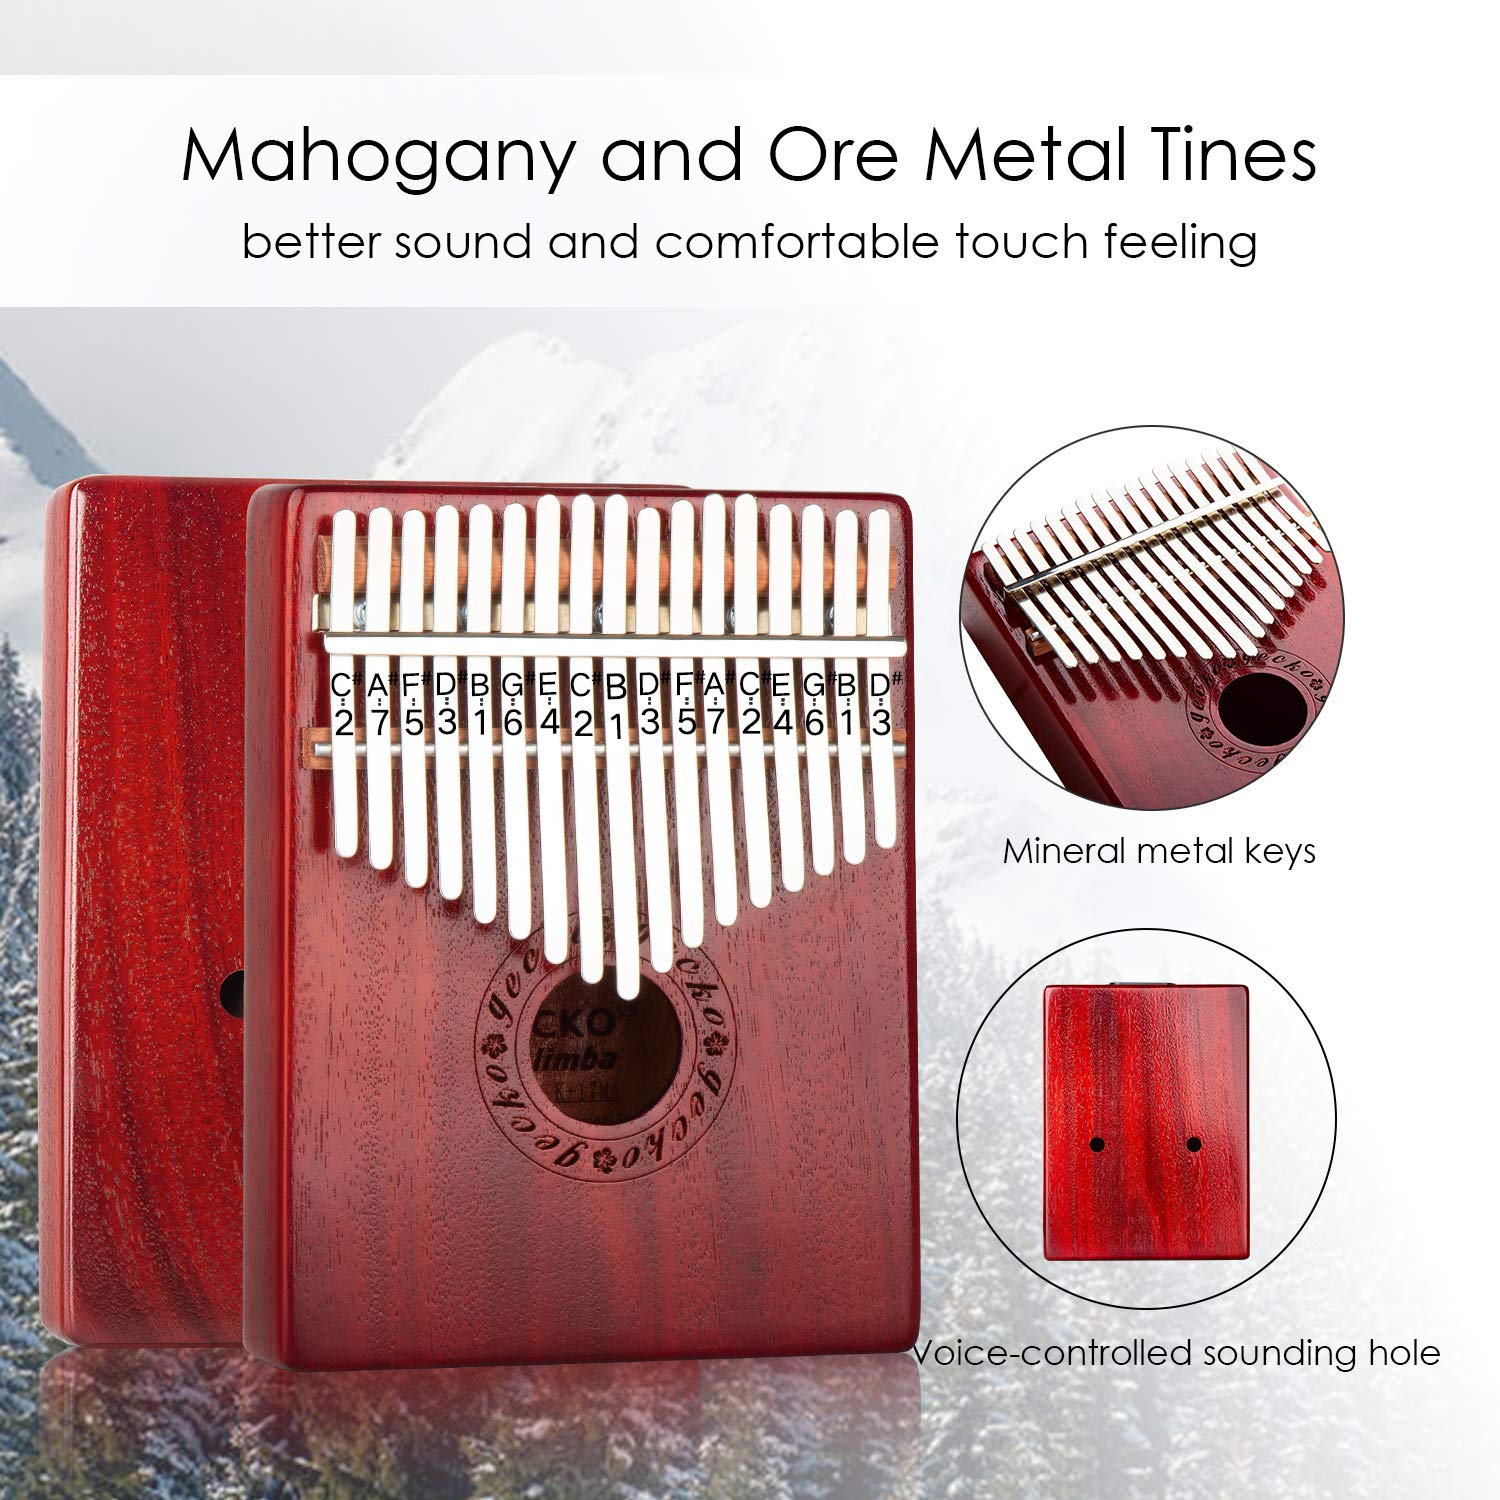 GECKO Kalimba 17 Keys Wide Key Thumb Piano builts-in EVA high-Performance Protective Box, Tuning Hammer and Study Instruction.K17MA by GECKO (Image #5)